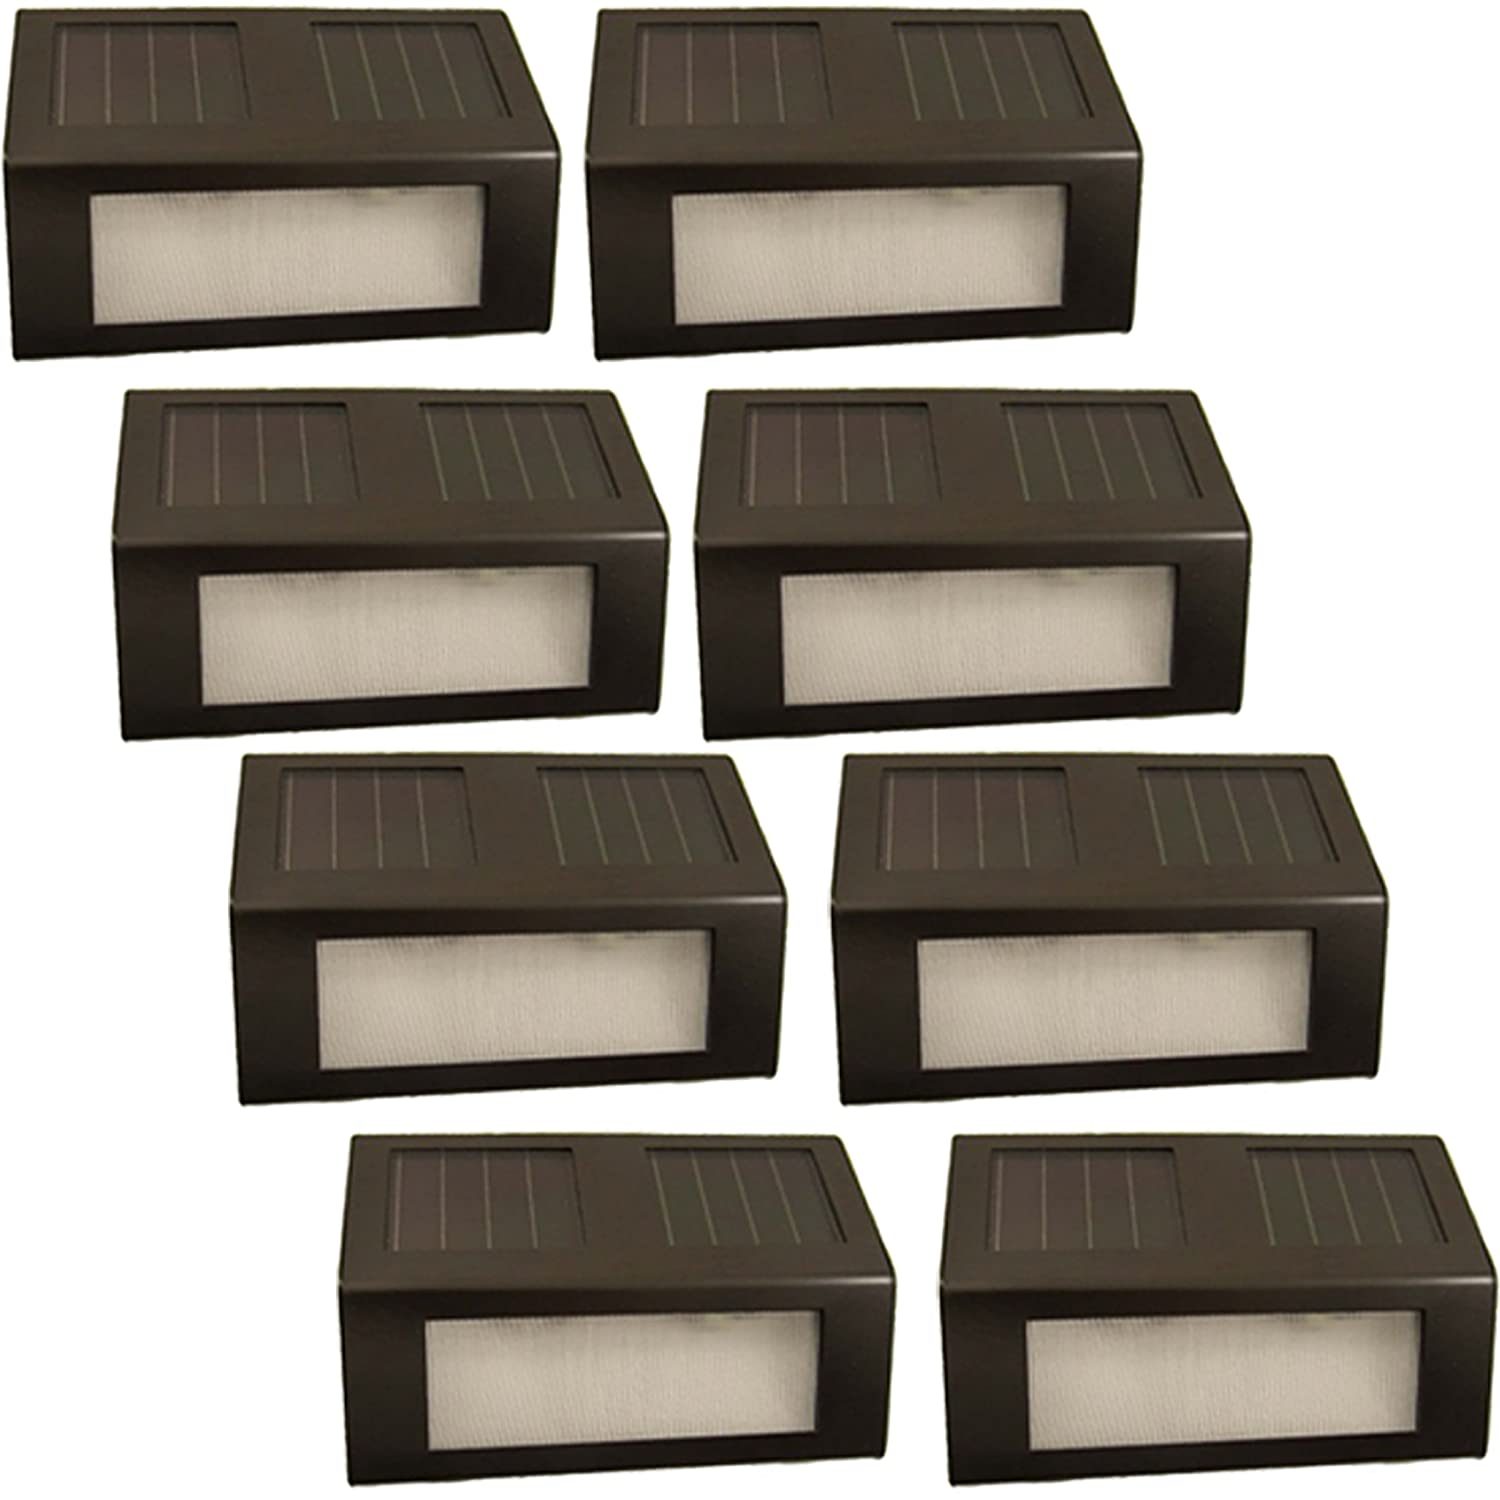 (8 Pack) Reusable Revolution Solar Outdoor LED Stair Lights (Brown)      Amazon.com